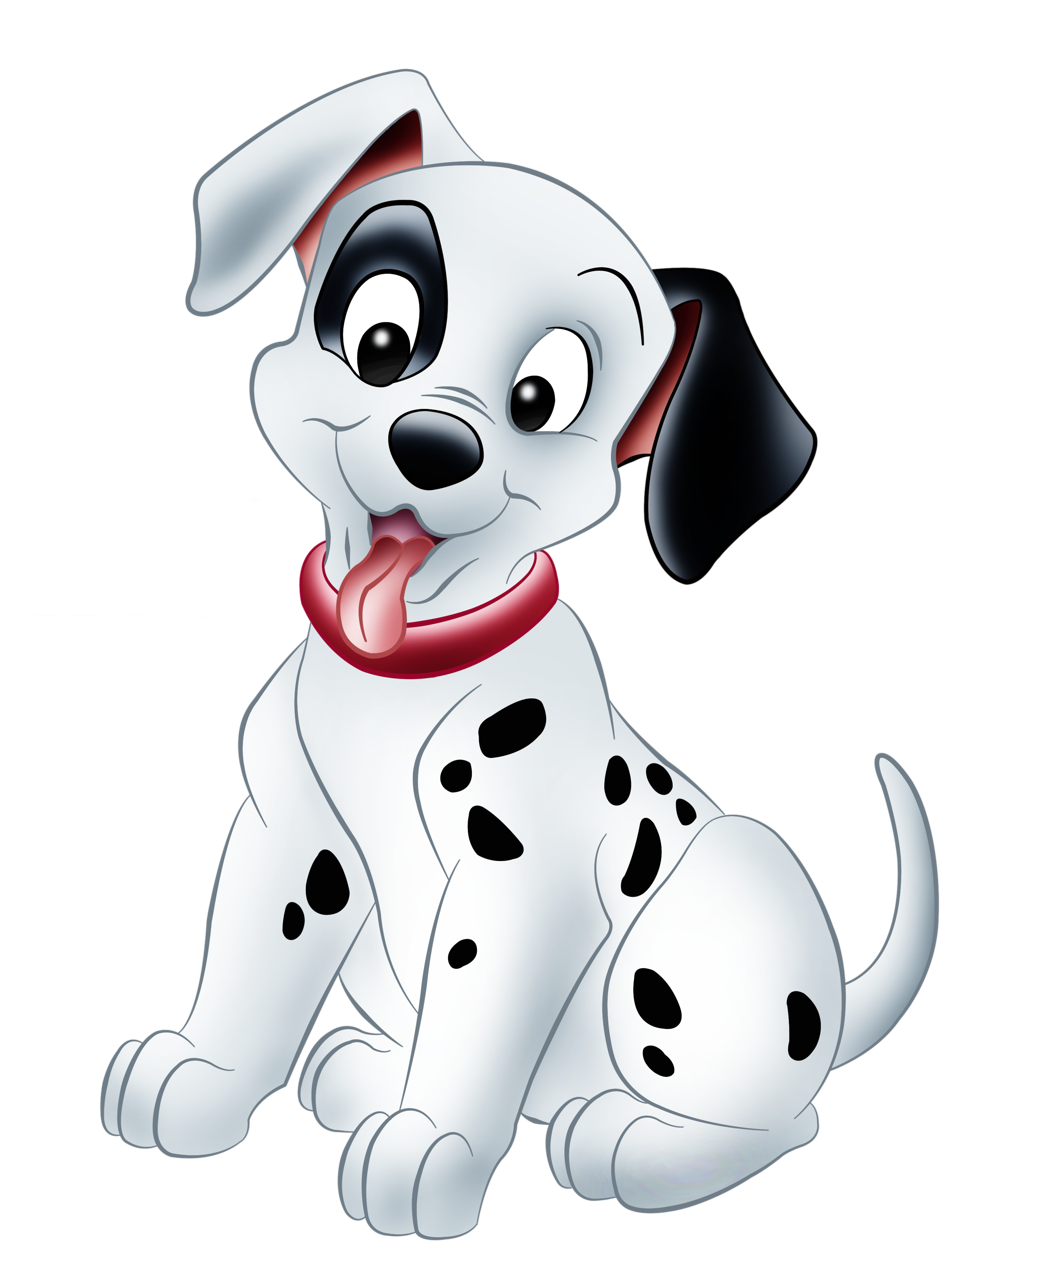 The Puppy Dalmatians Picture De Dog Vil PNG Image